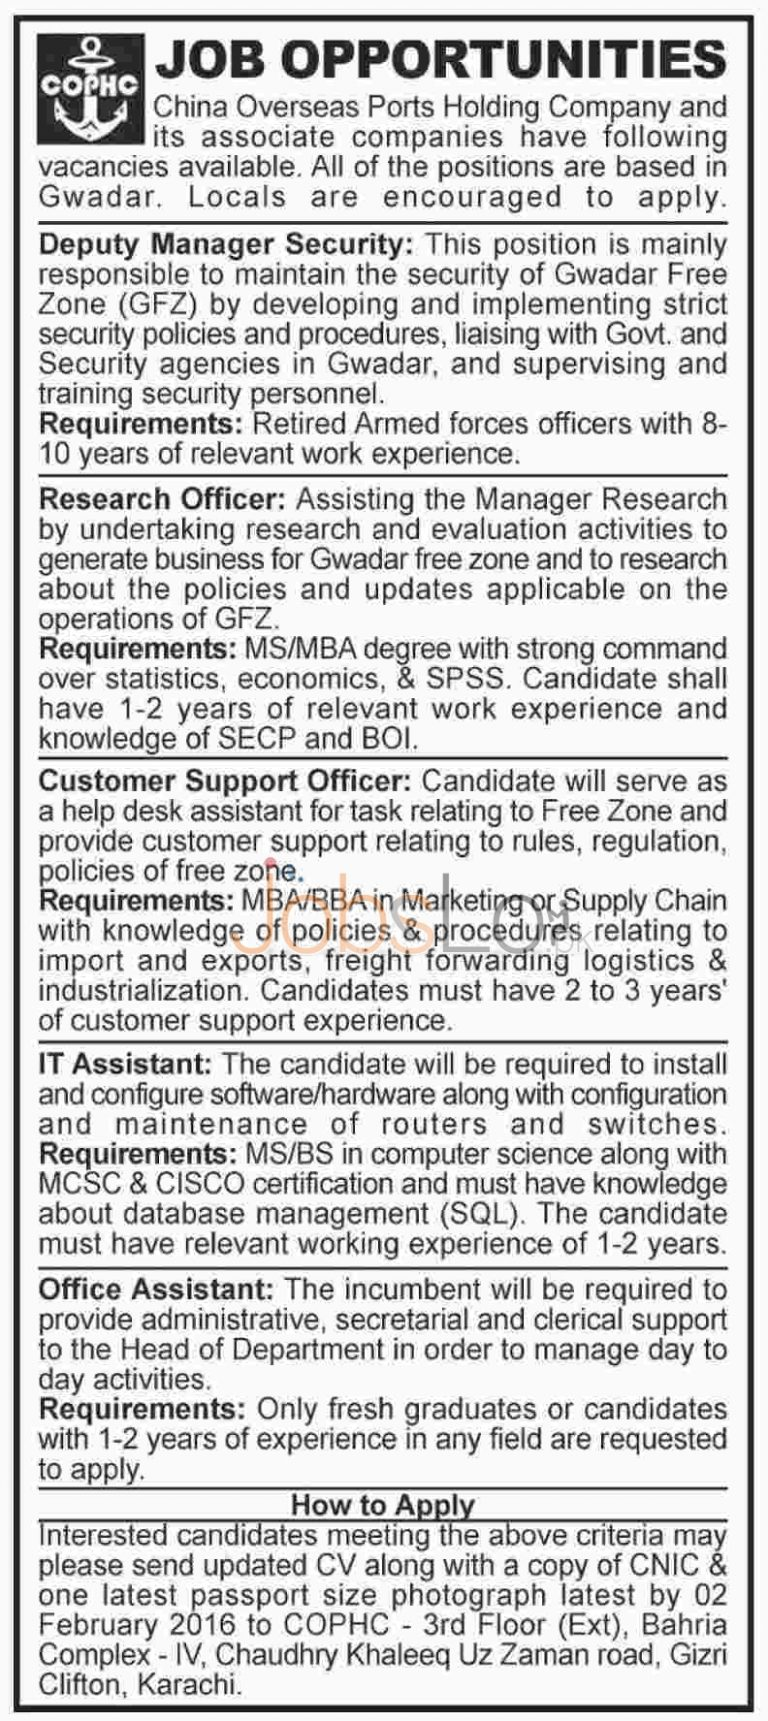 China Overseas Ports Holding Company Jobs 2016 in Gawadar Latest Advertisement